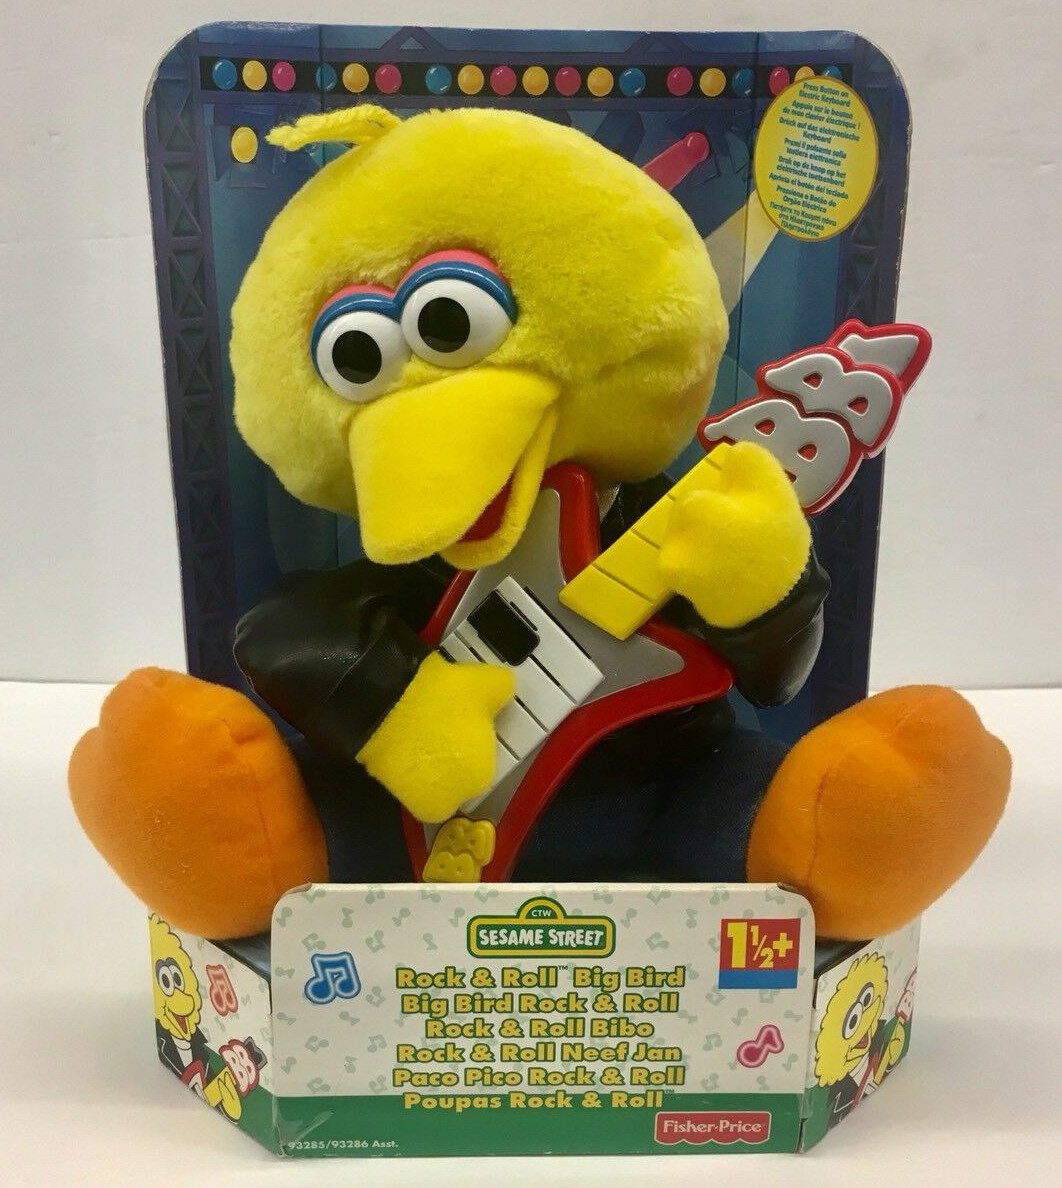 Rock&amp;RollBigBirdTyco1999